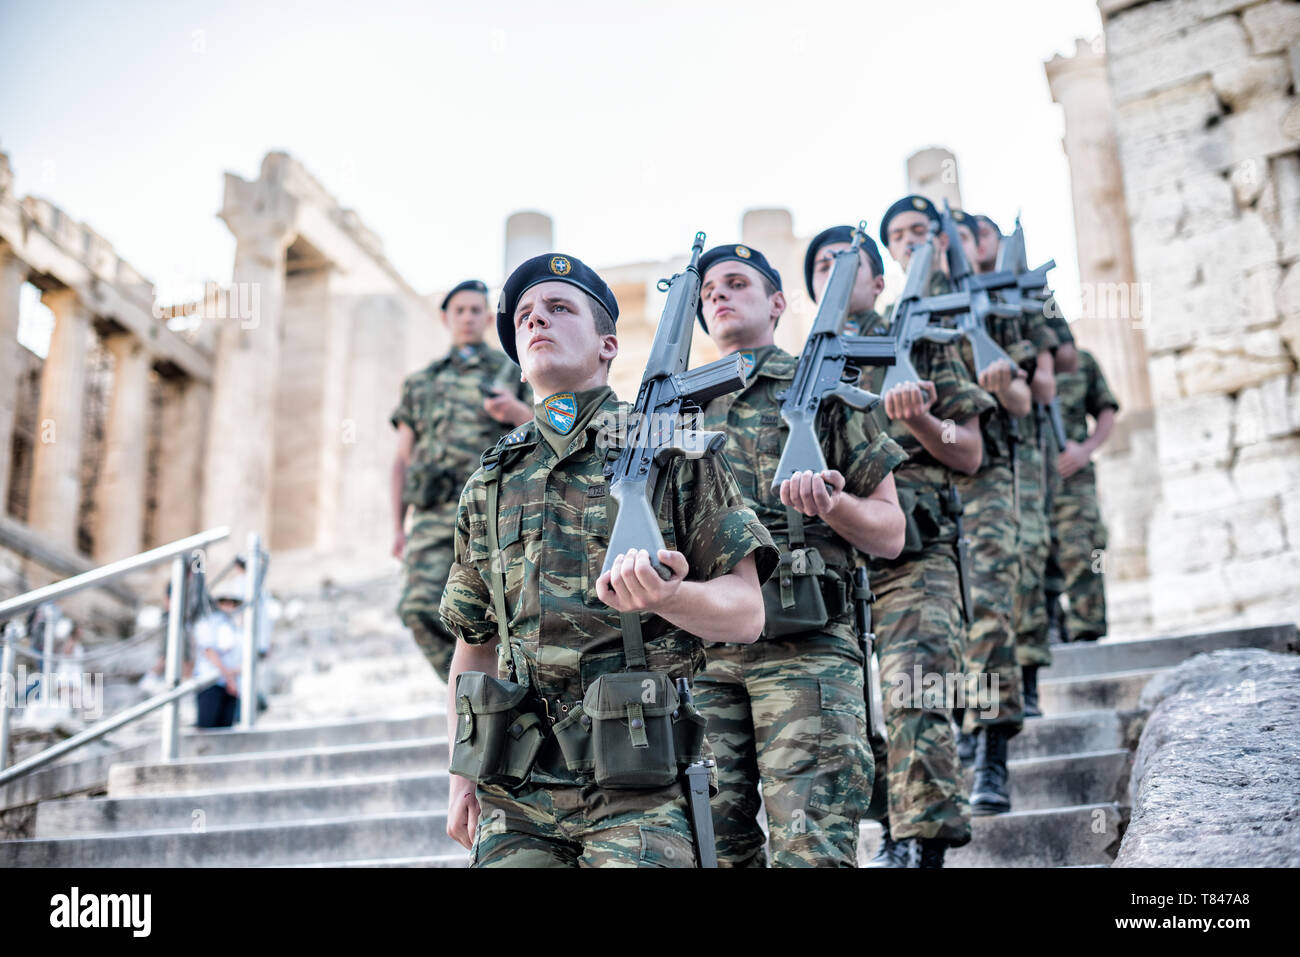 Greek soldiers march in formation while on patrol at the Acropolis of Athens. The Acropolis of Athens is an ancient citadel standing on a rocky outcro - Stock Image